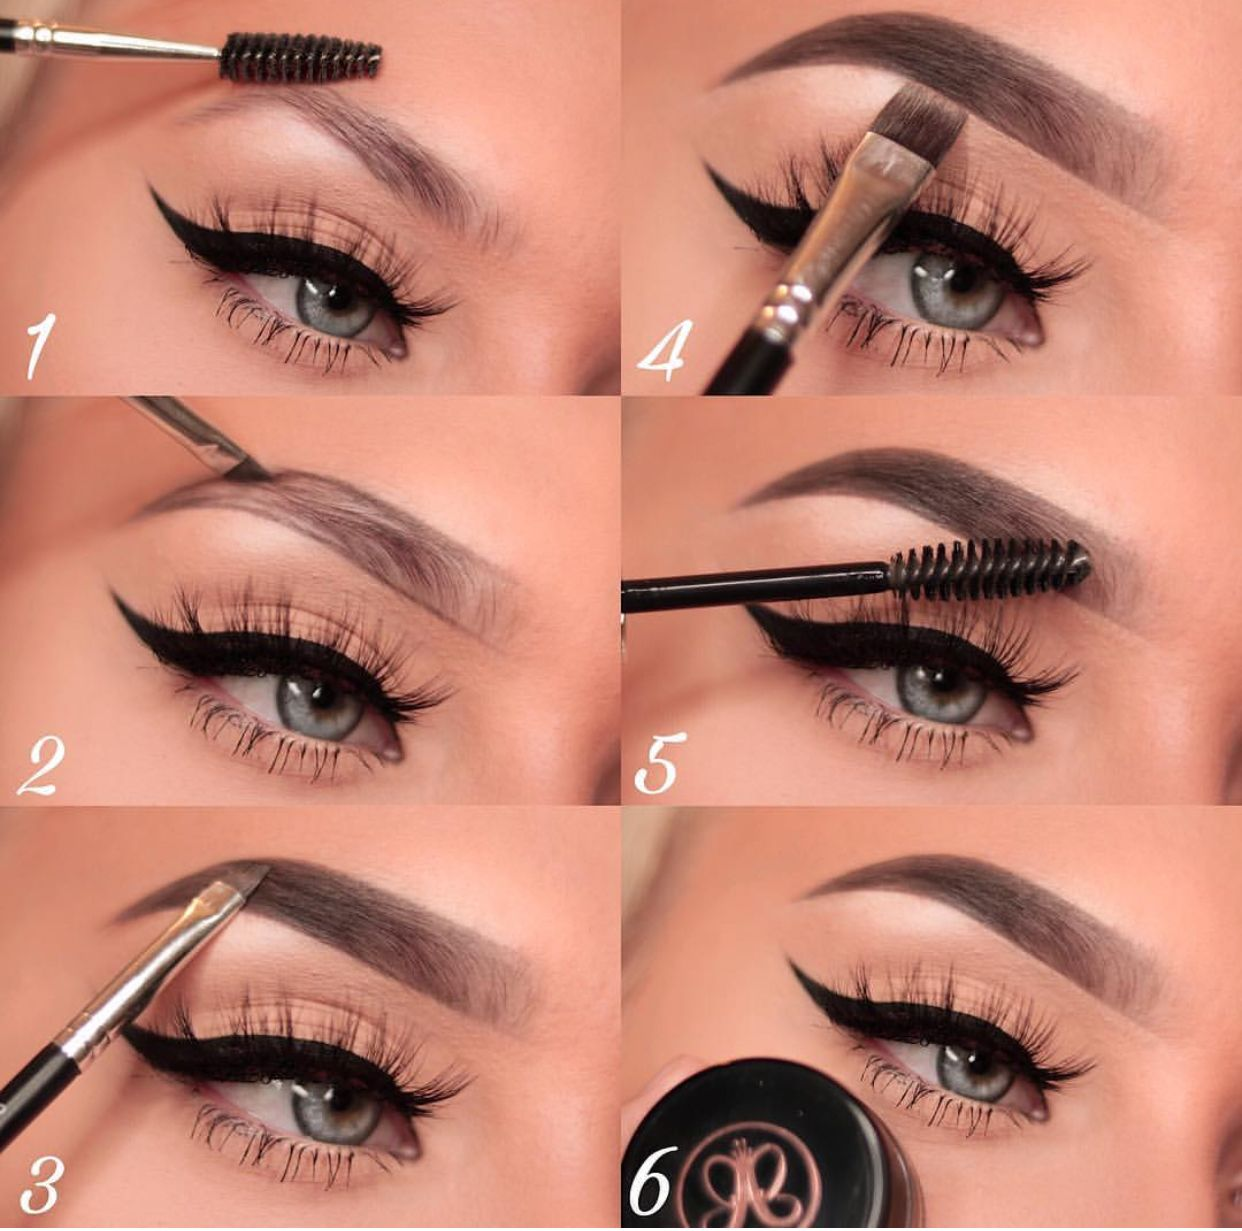 ᵛᴬᴿᵀᴬᴾ Eyeshadow tutorial for beginners, Eyebrow makeup